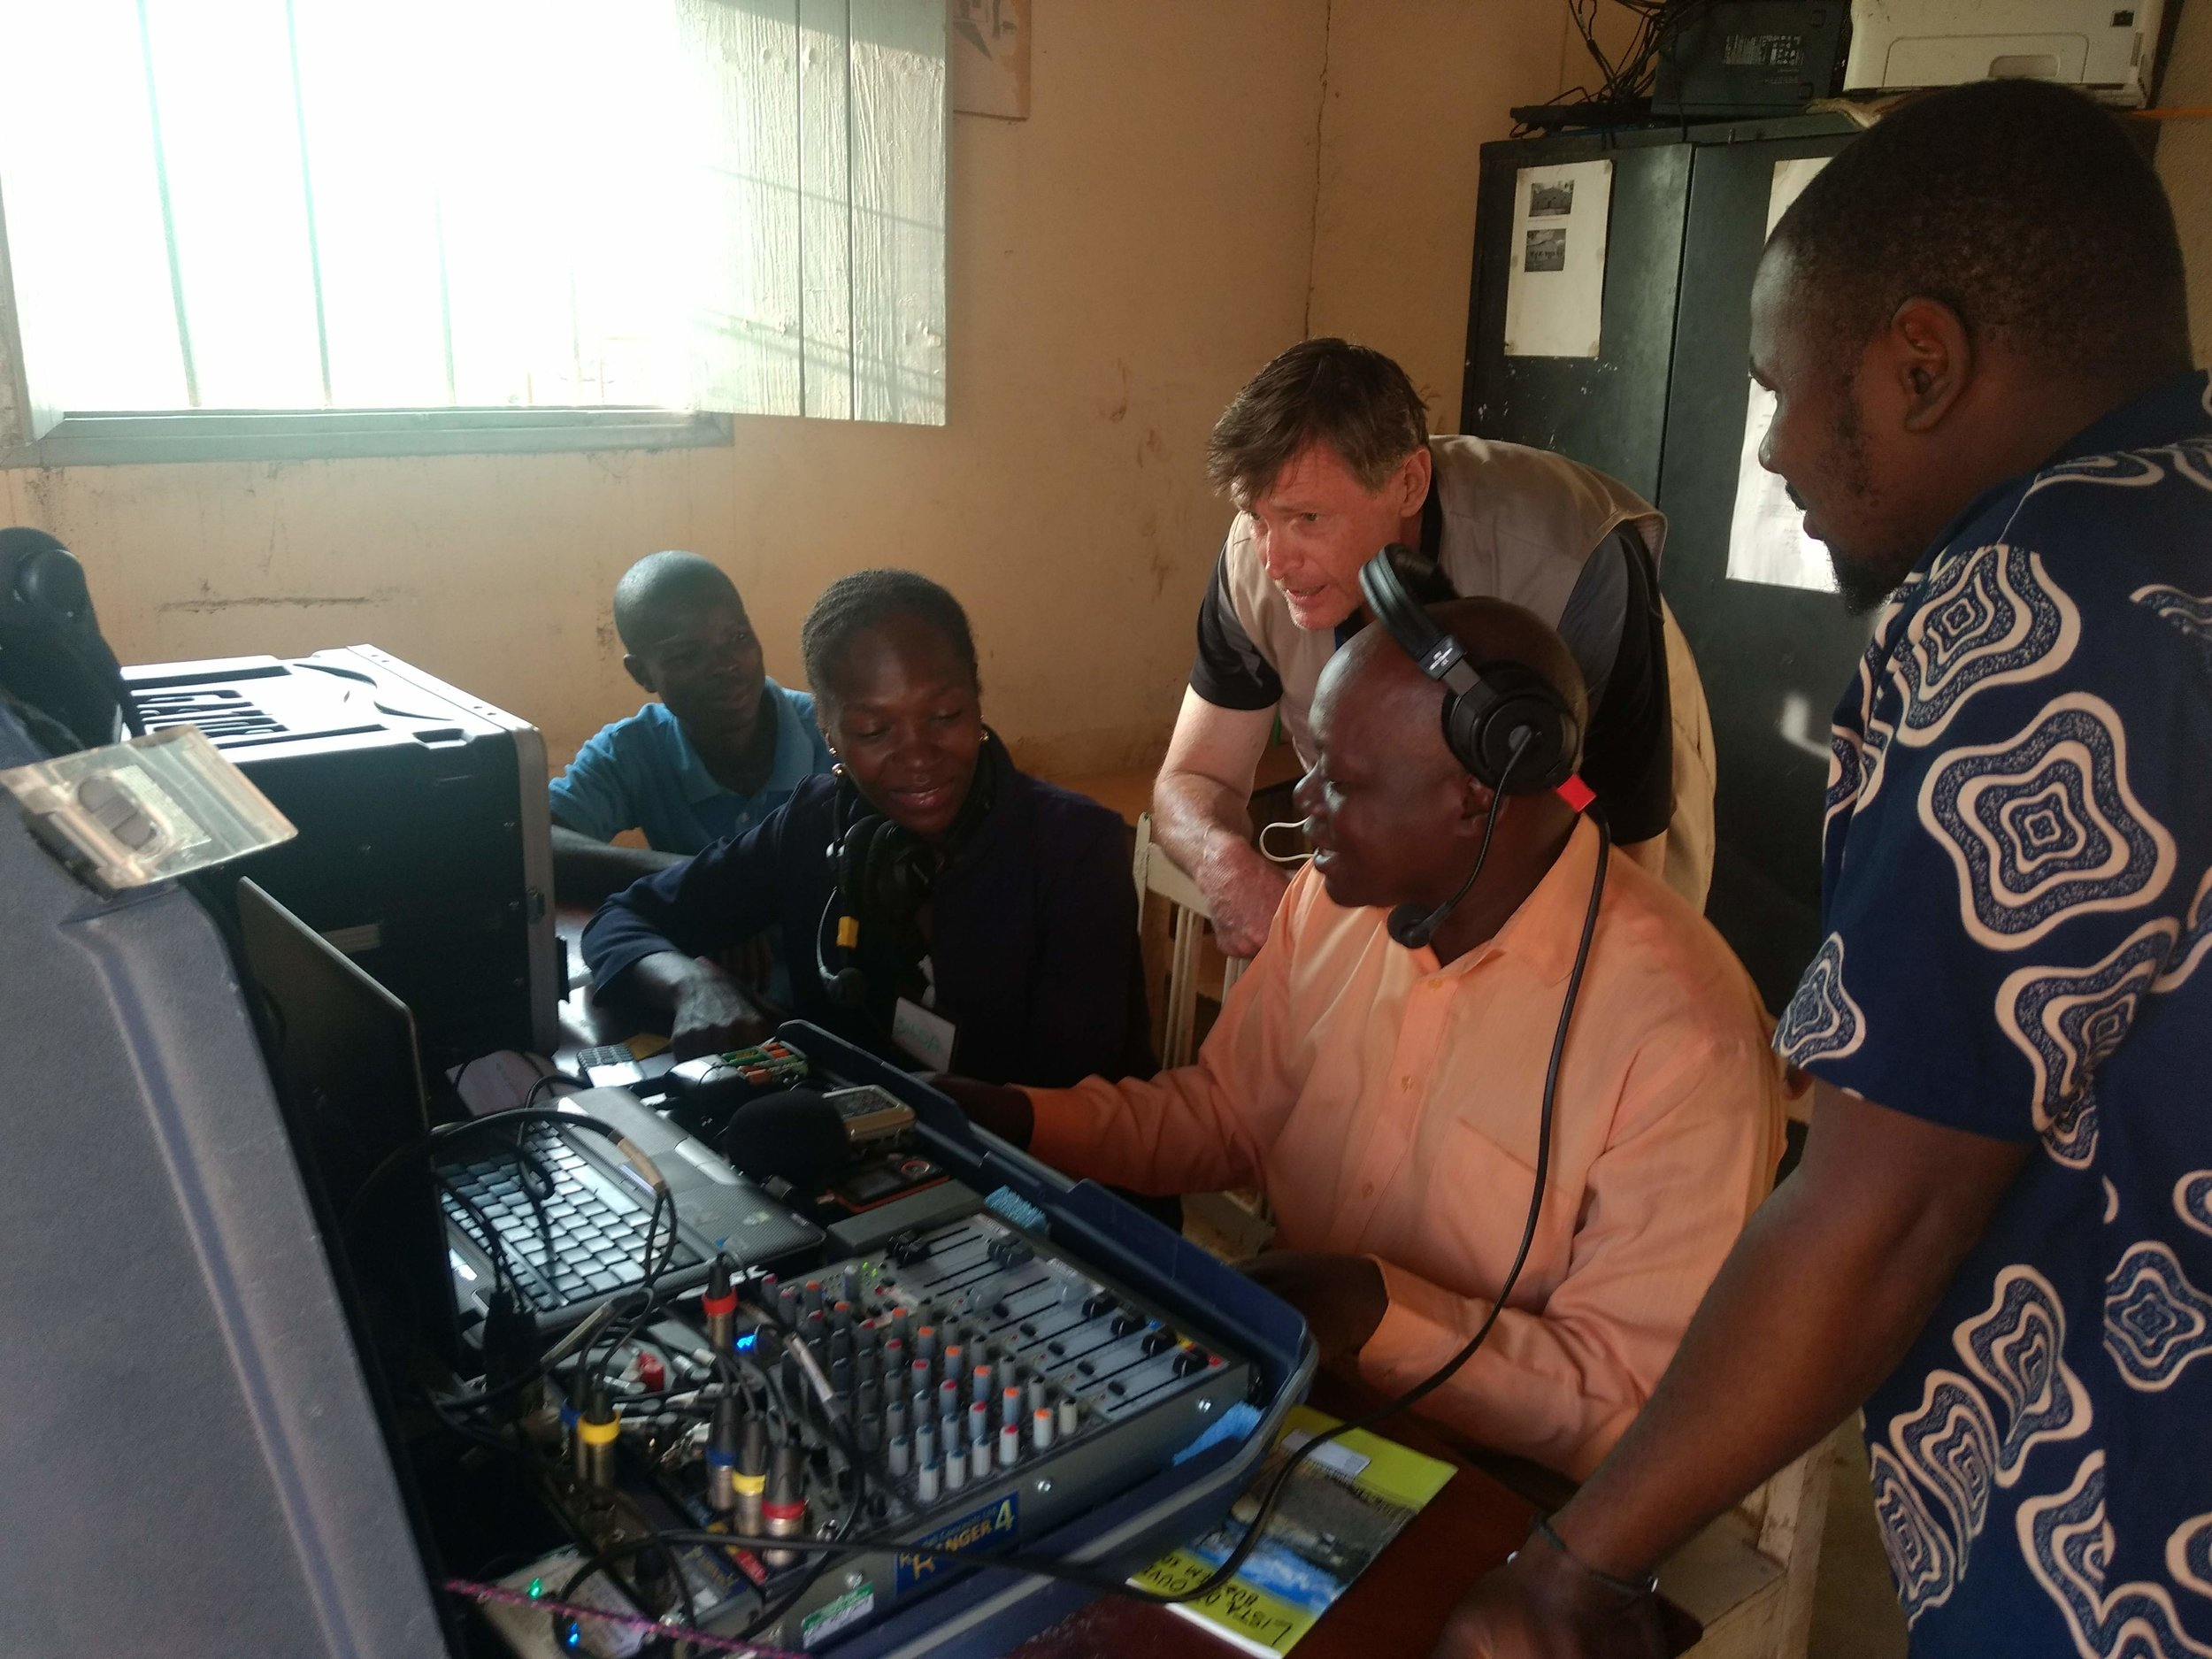 Buzi FM using FRR studio suticase equipment, March 2019. (Photo credit: HCR)